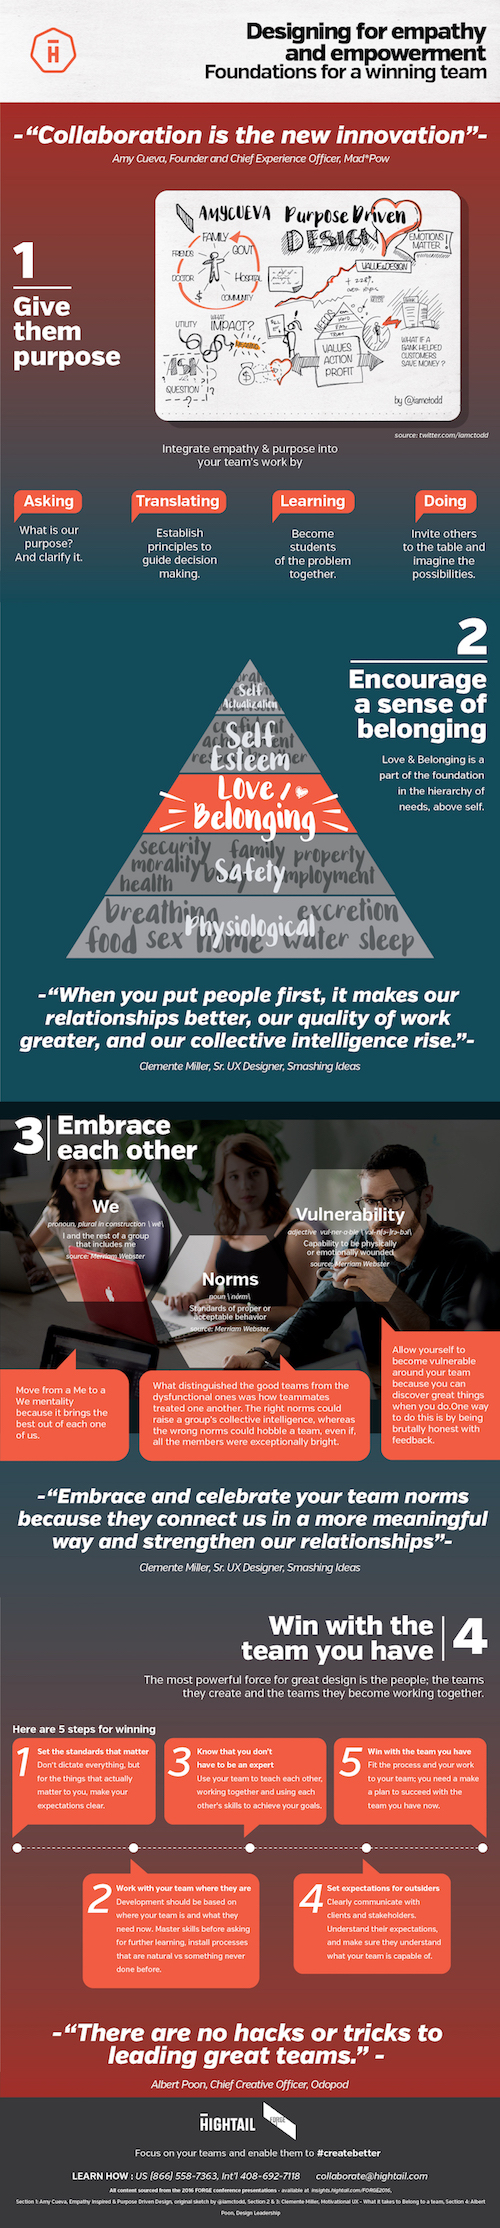 *Image source: http://blog.hightail.com/4-foundations-winning-team-infographic/